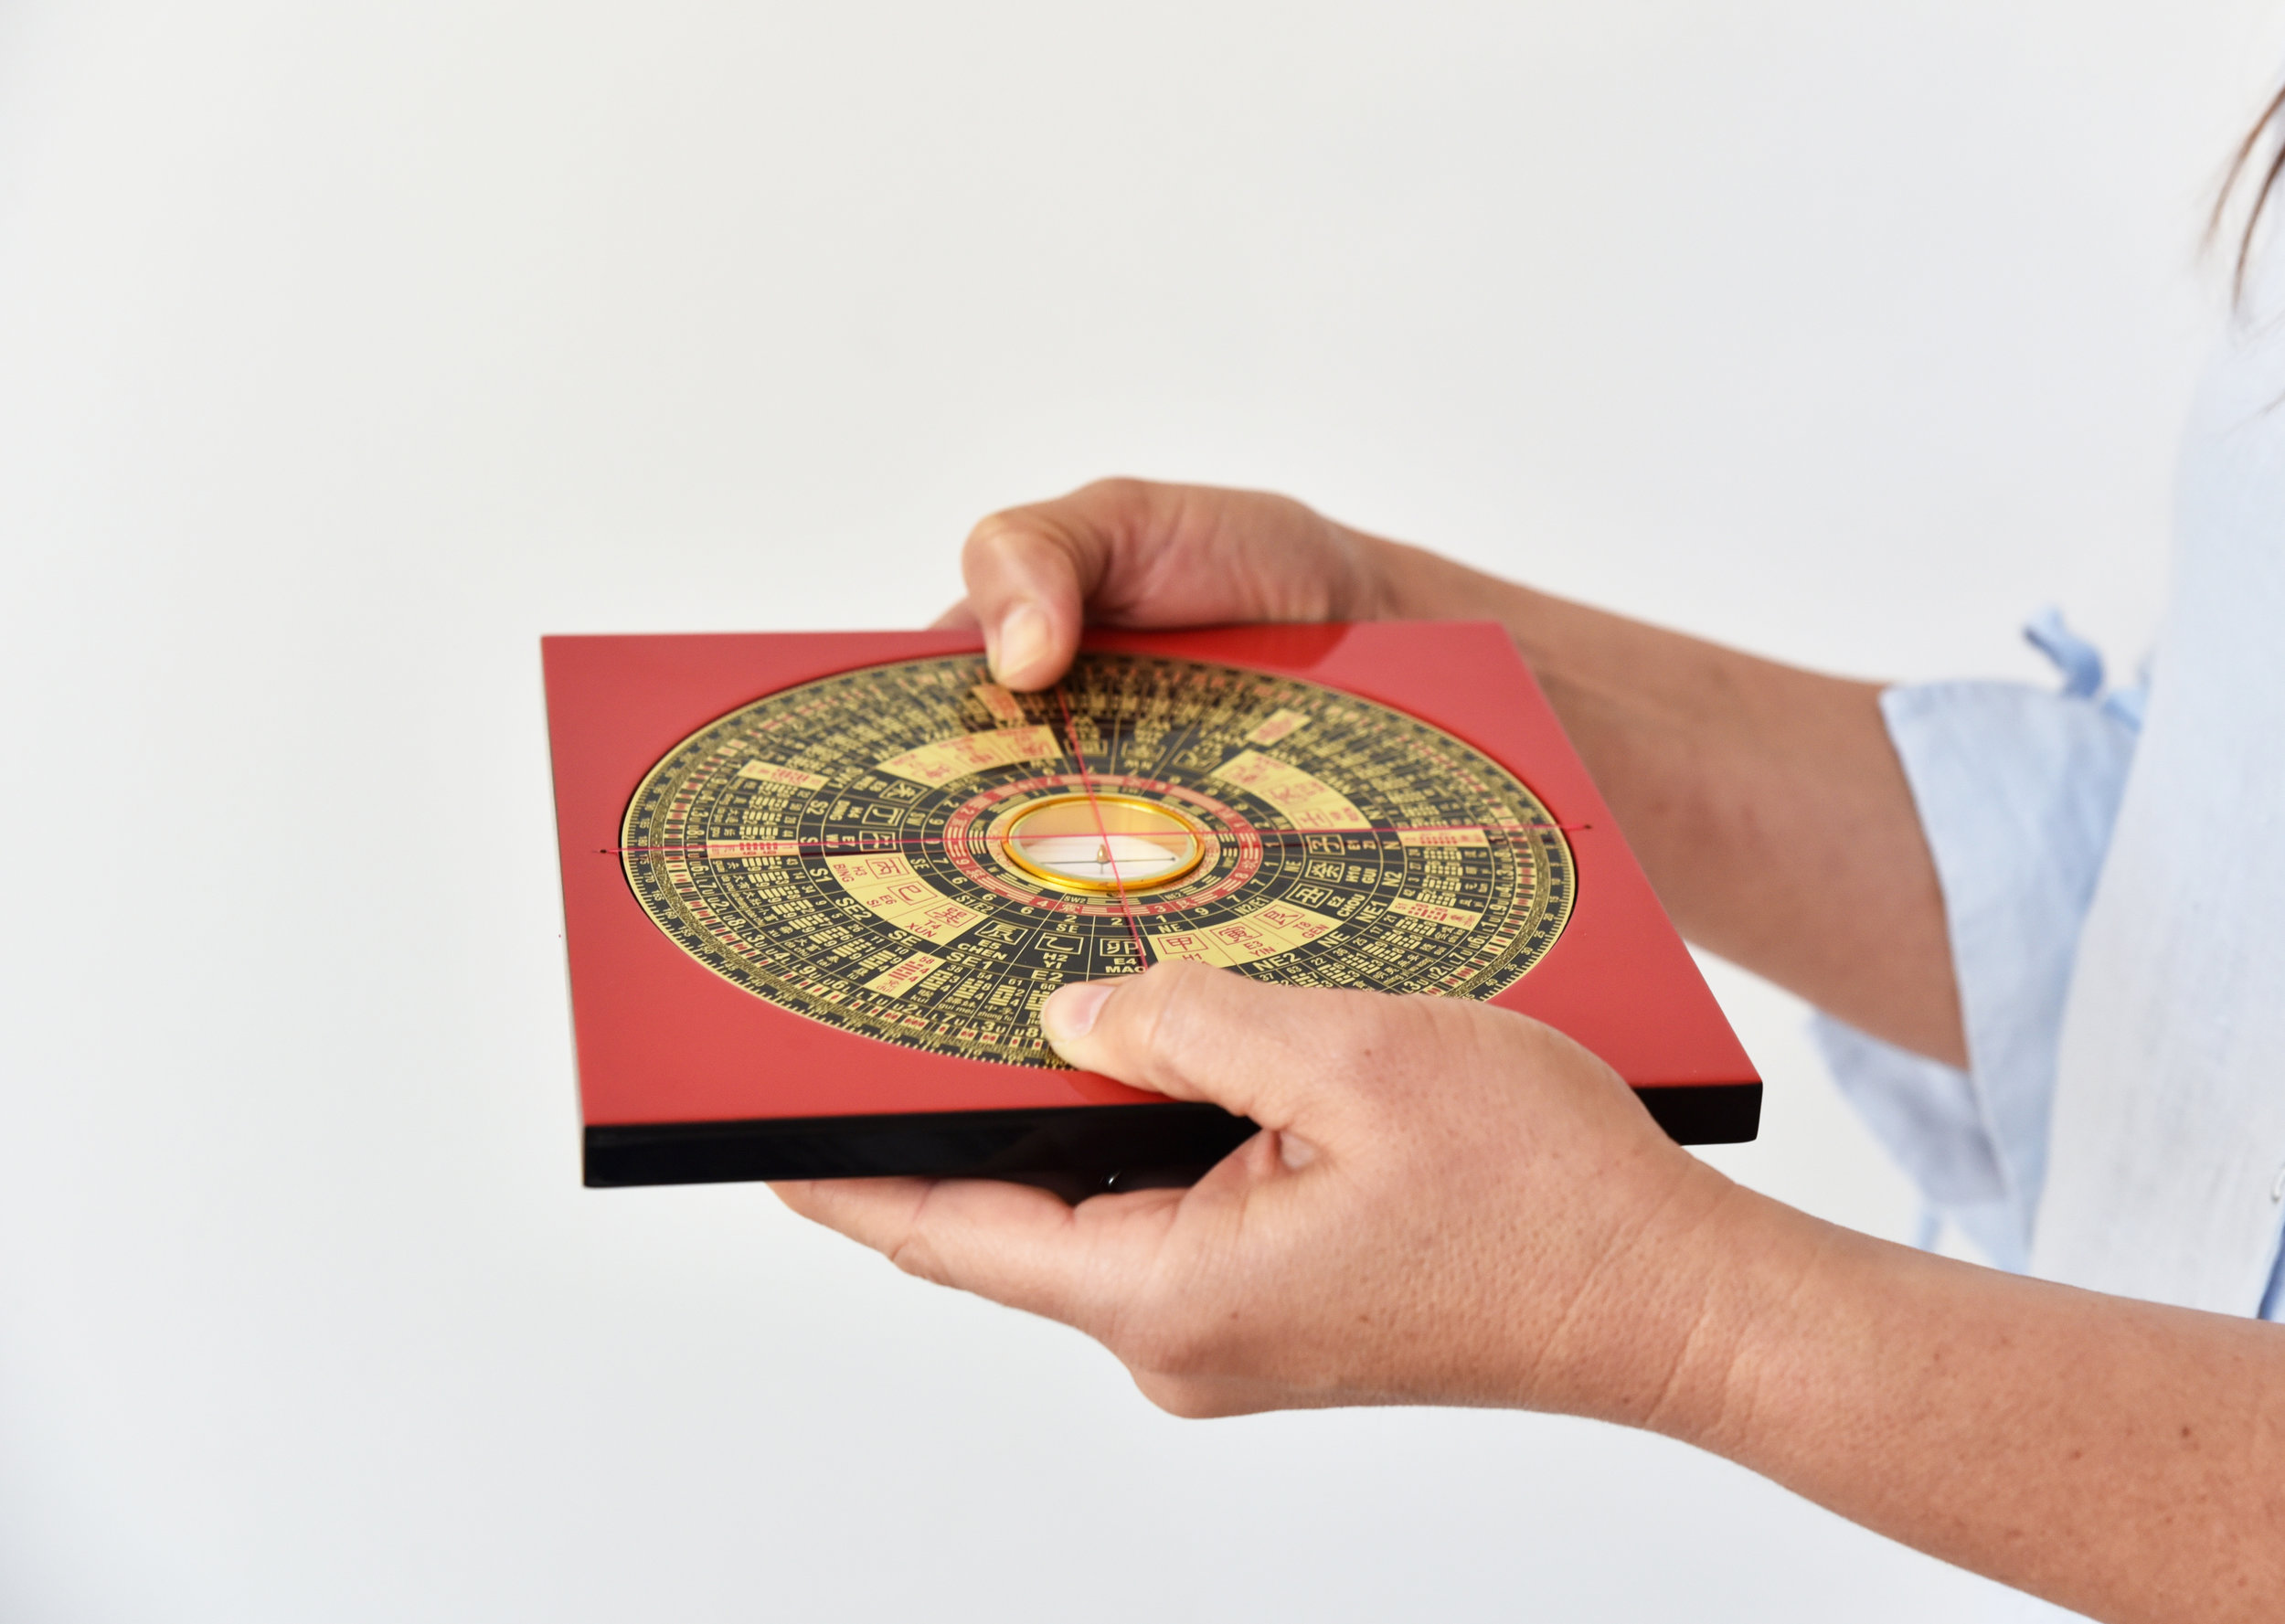 Luo Pan :: The Feng Shui Compass